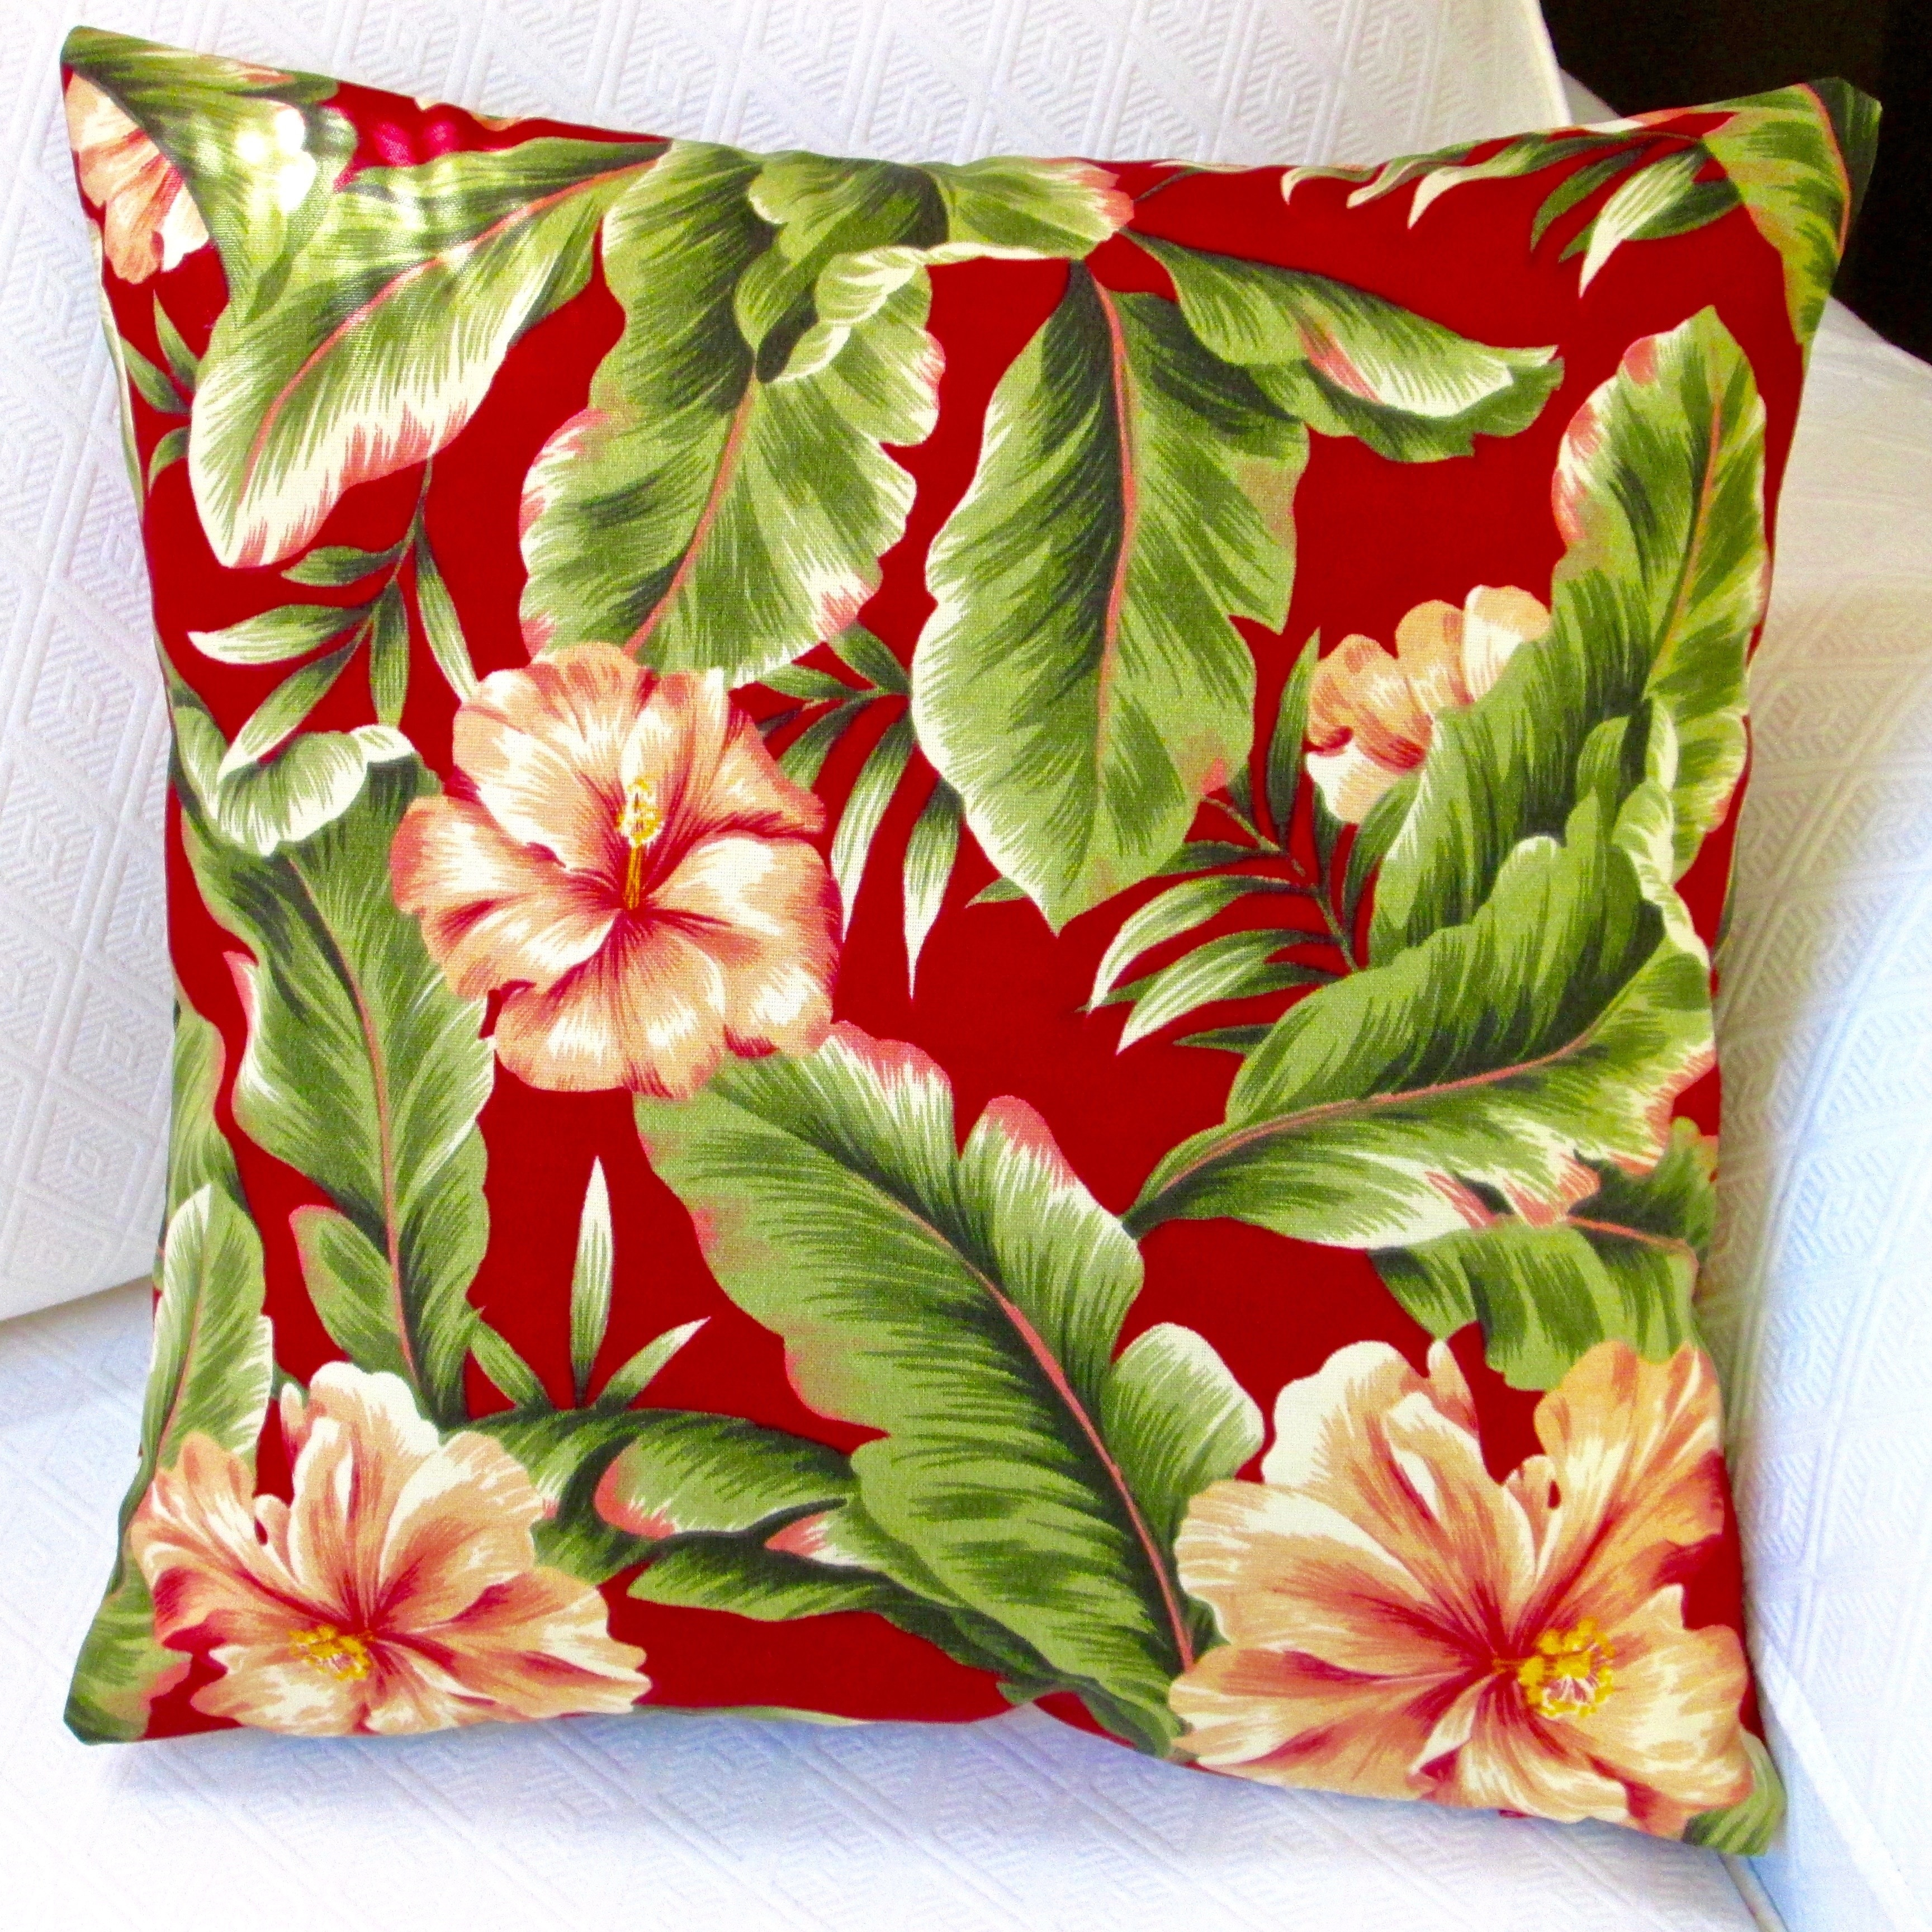 Shop artisan pillows indoor outdoor 18 inch red hawaiian tropical shop artisan pillows indoor outdoor 18 inch red hawaiian tropical island beach decor hibiscus flower throw pillow cover set of 2 on sale free izmirmasajfo